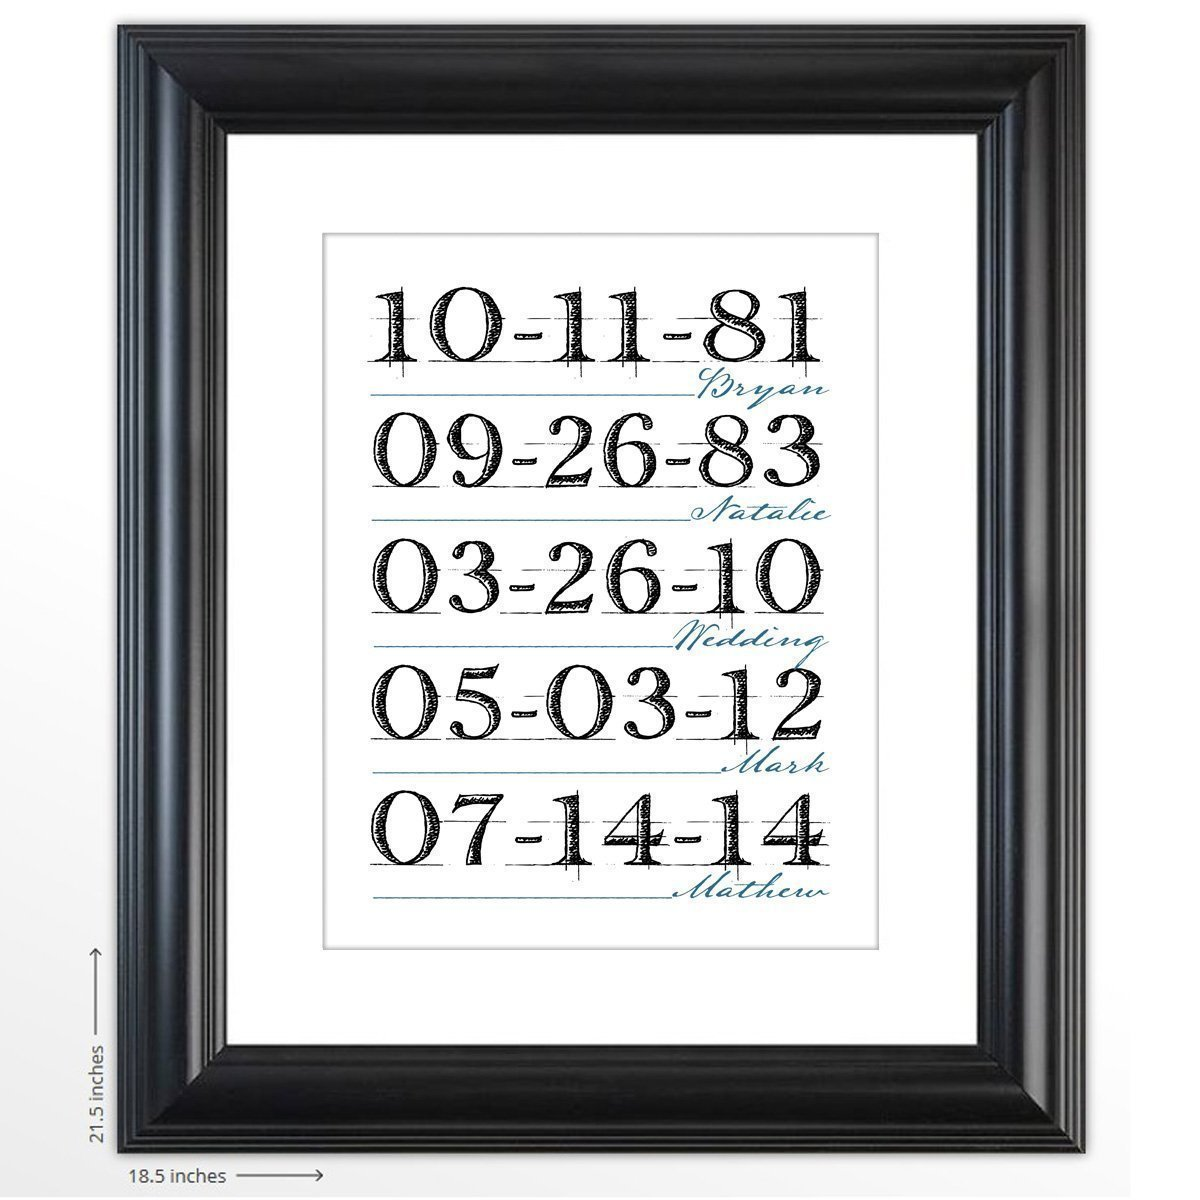 Personalized Unique Print - ''What a Difference a Day Makes'' - The Perfect Present for an Anniversary or for Mother's Day - Customized Framed Print Includes Names and Special Dates by Personalized Signs by Lone Star Art